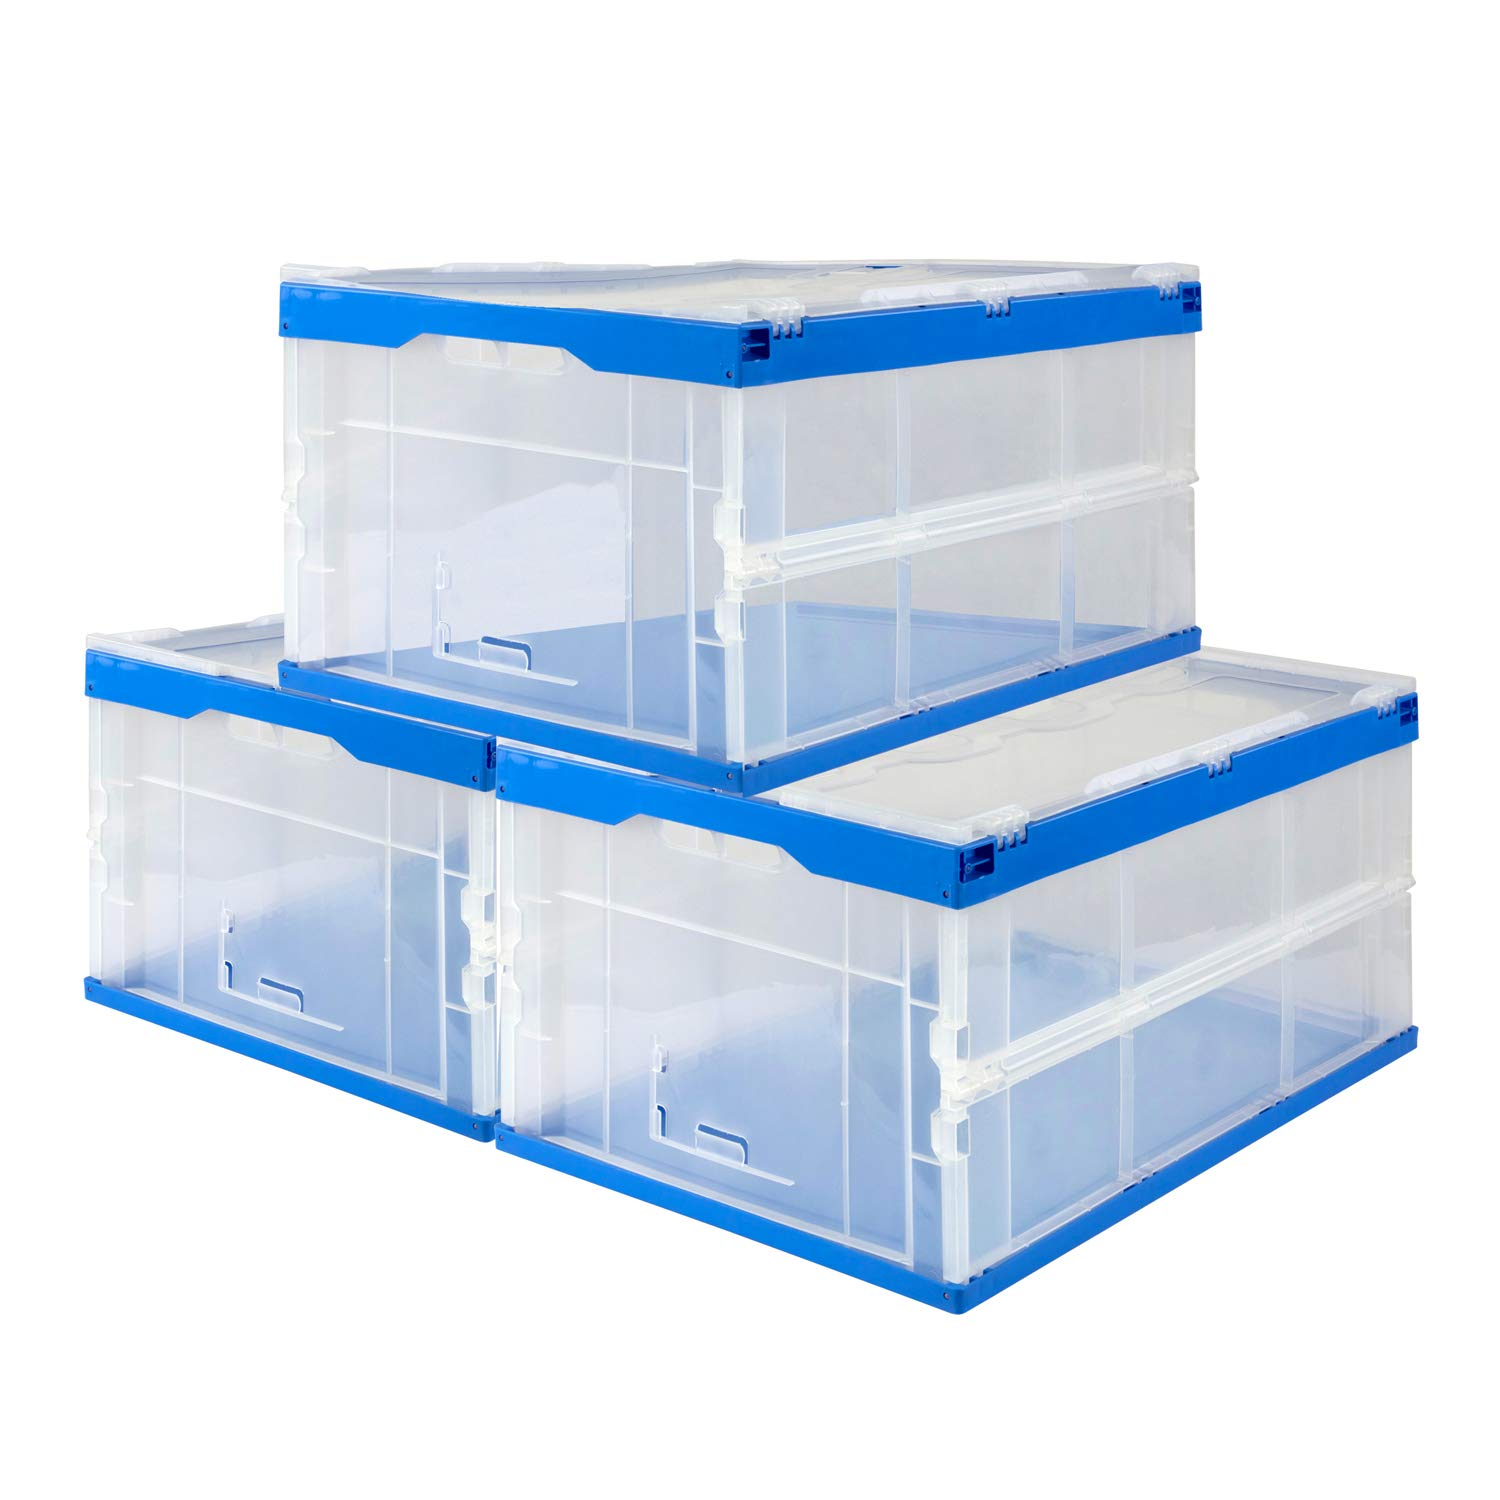 Mount-It! Folding Plastic Storage Crate, Collapsible Utility Distribution Container with Attached Lid, 65L Liter Capacity, Clear (Set of 3) by Mount-It!